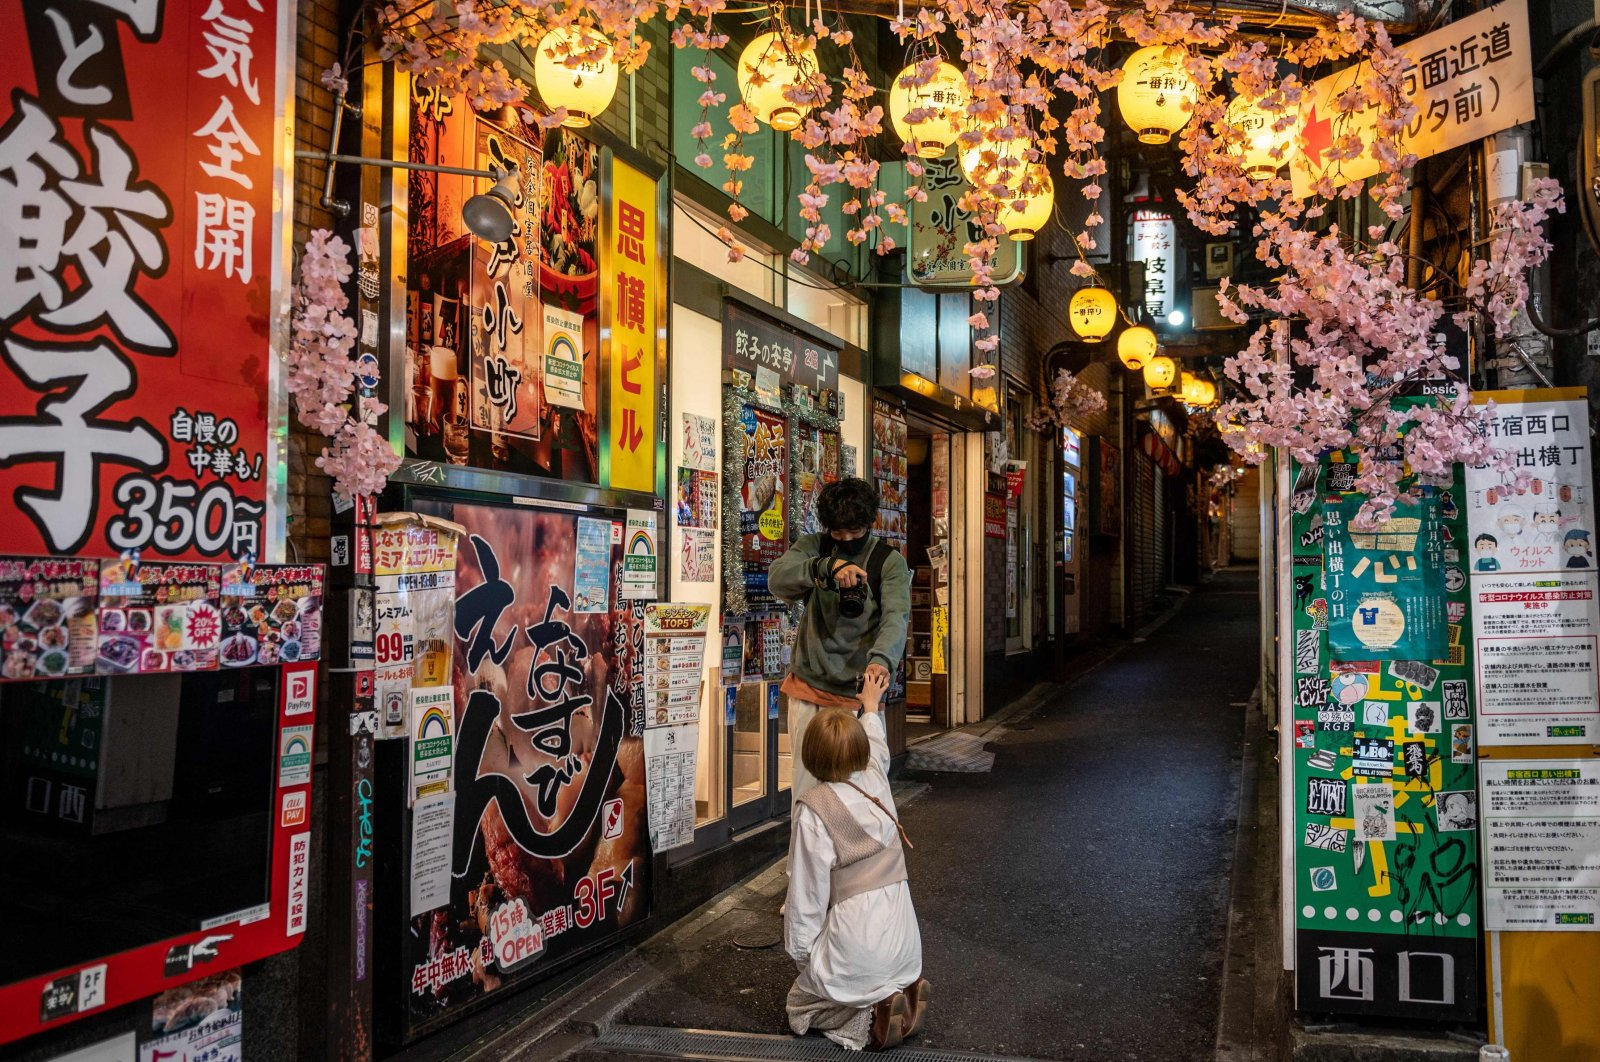 """A couple take pictures at Omoide Yokocho alleyway with closed restaurants in the Shinjuku district during Japan's """"Golden Week"""" holidays, Tokyo, Japan, May 4, 2021. (AFP Photo)"""